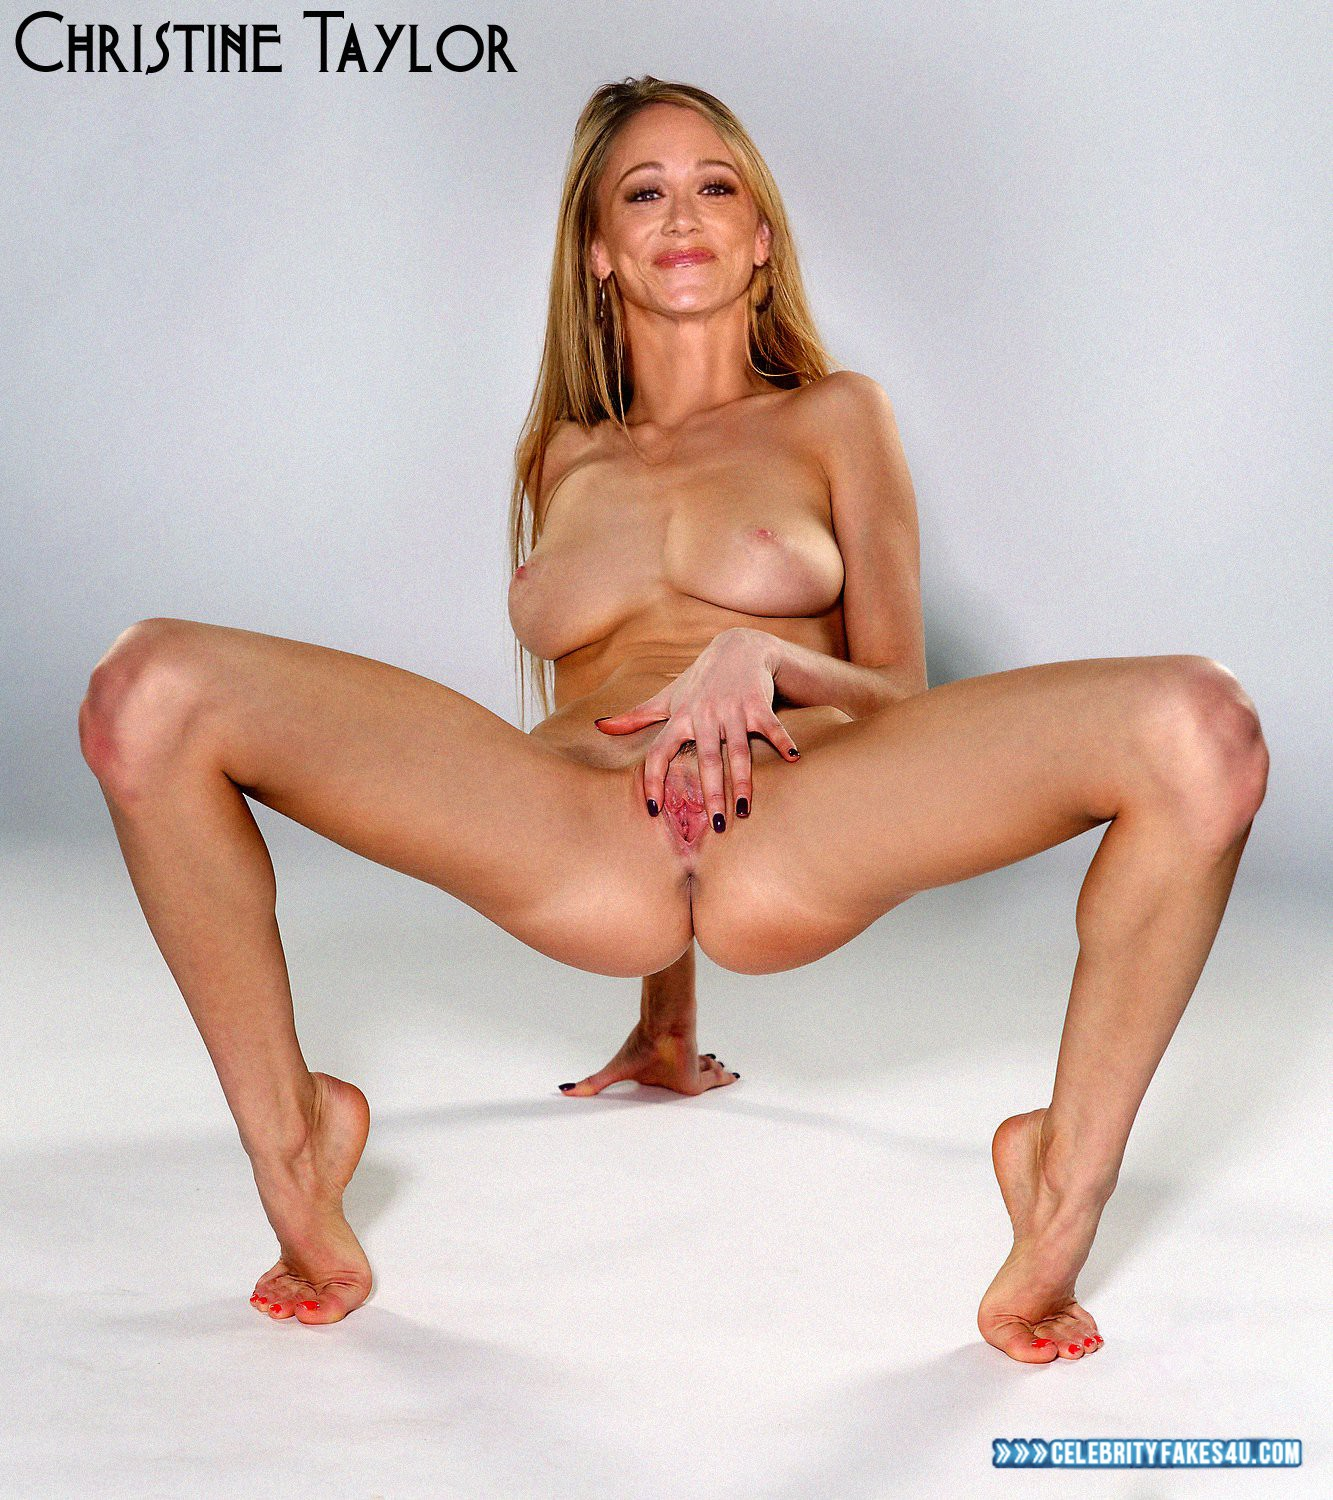 Opinion Christine taylor nude fakes are not